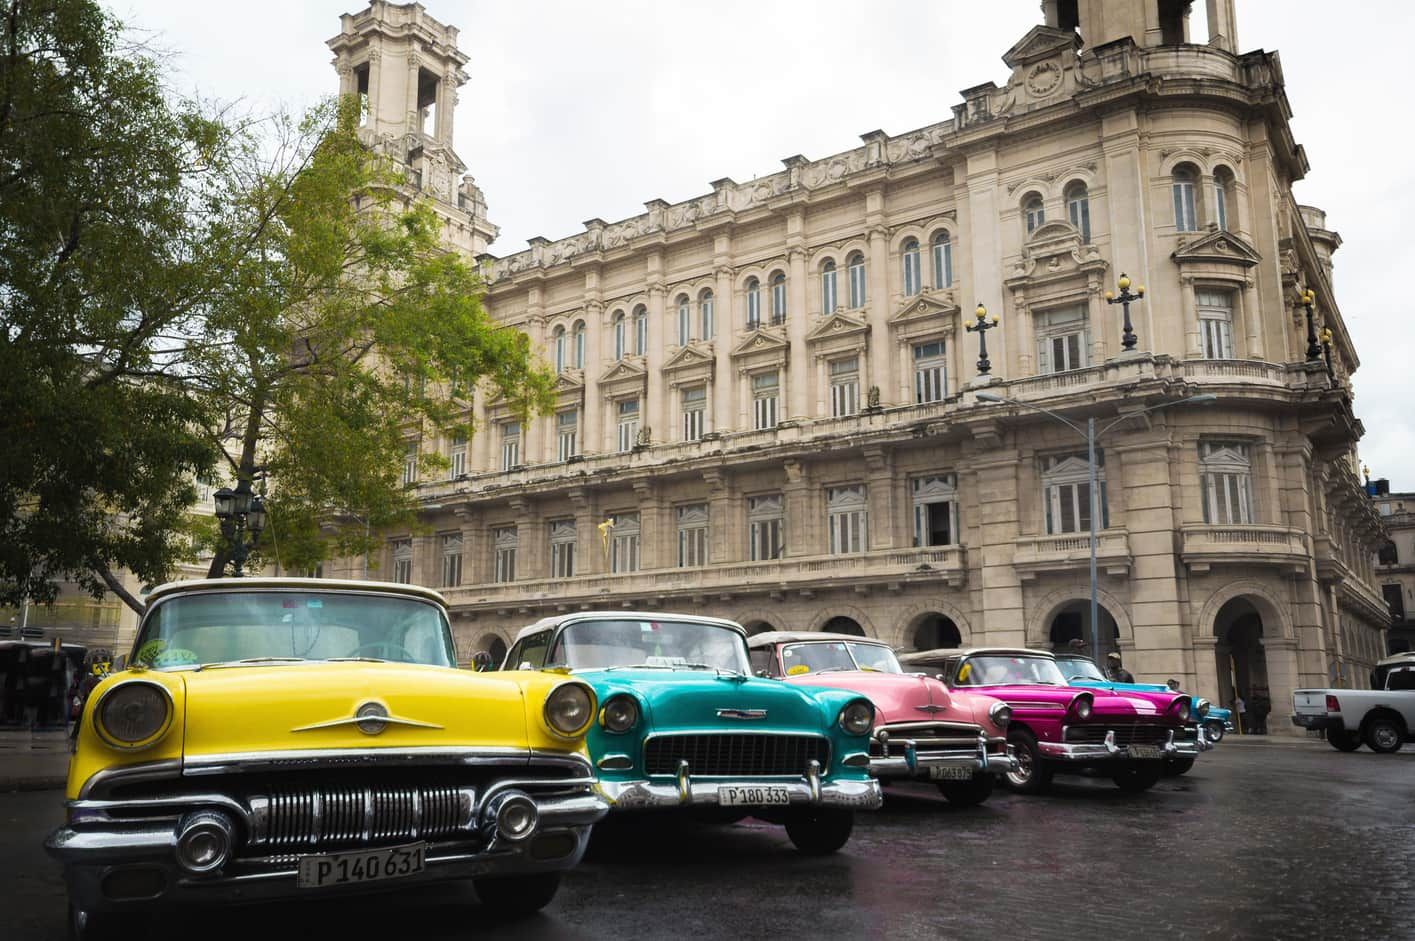 Old colored cars Havana Cuba. Things to do in Havana